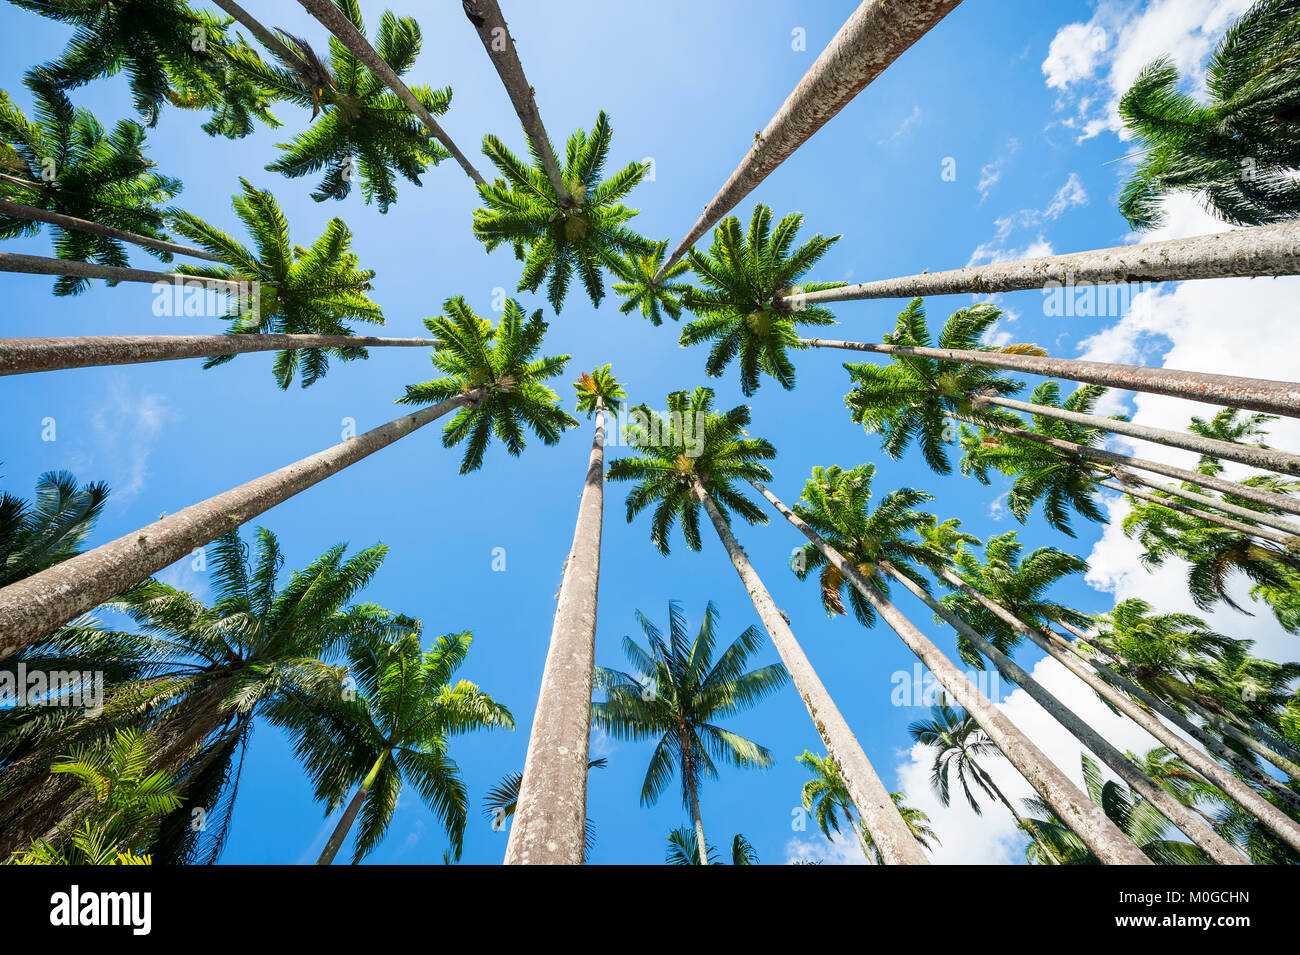 Avenue of tall royal palm trees soar into bright blue tropical sky in Rio de Janeiro, Brazil - Stock Image